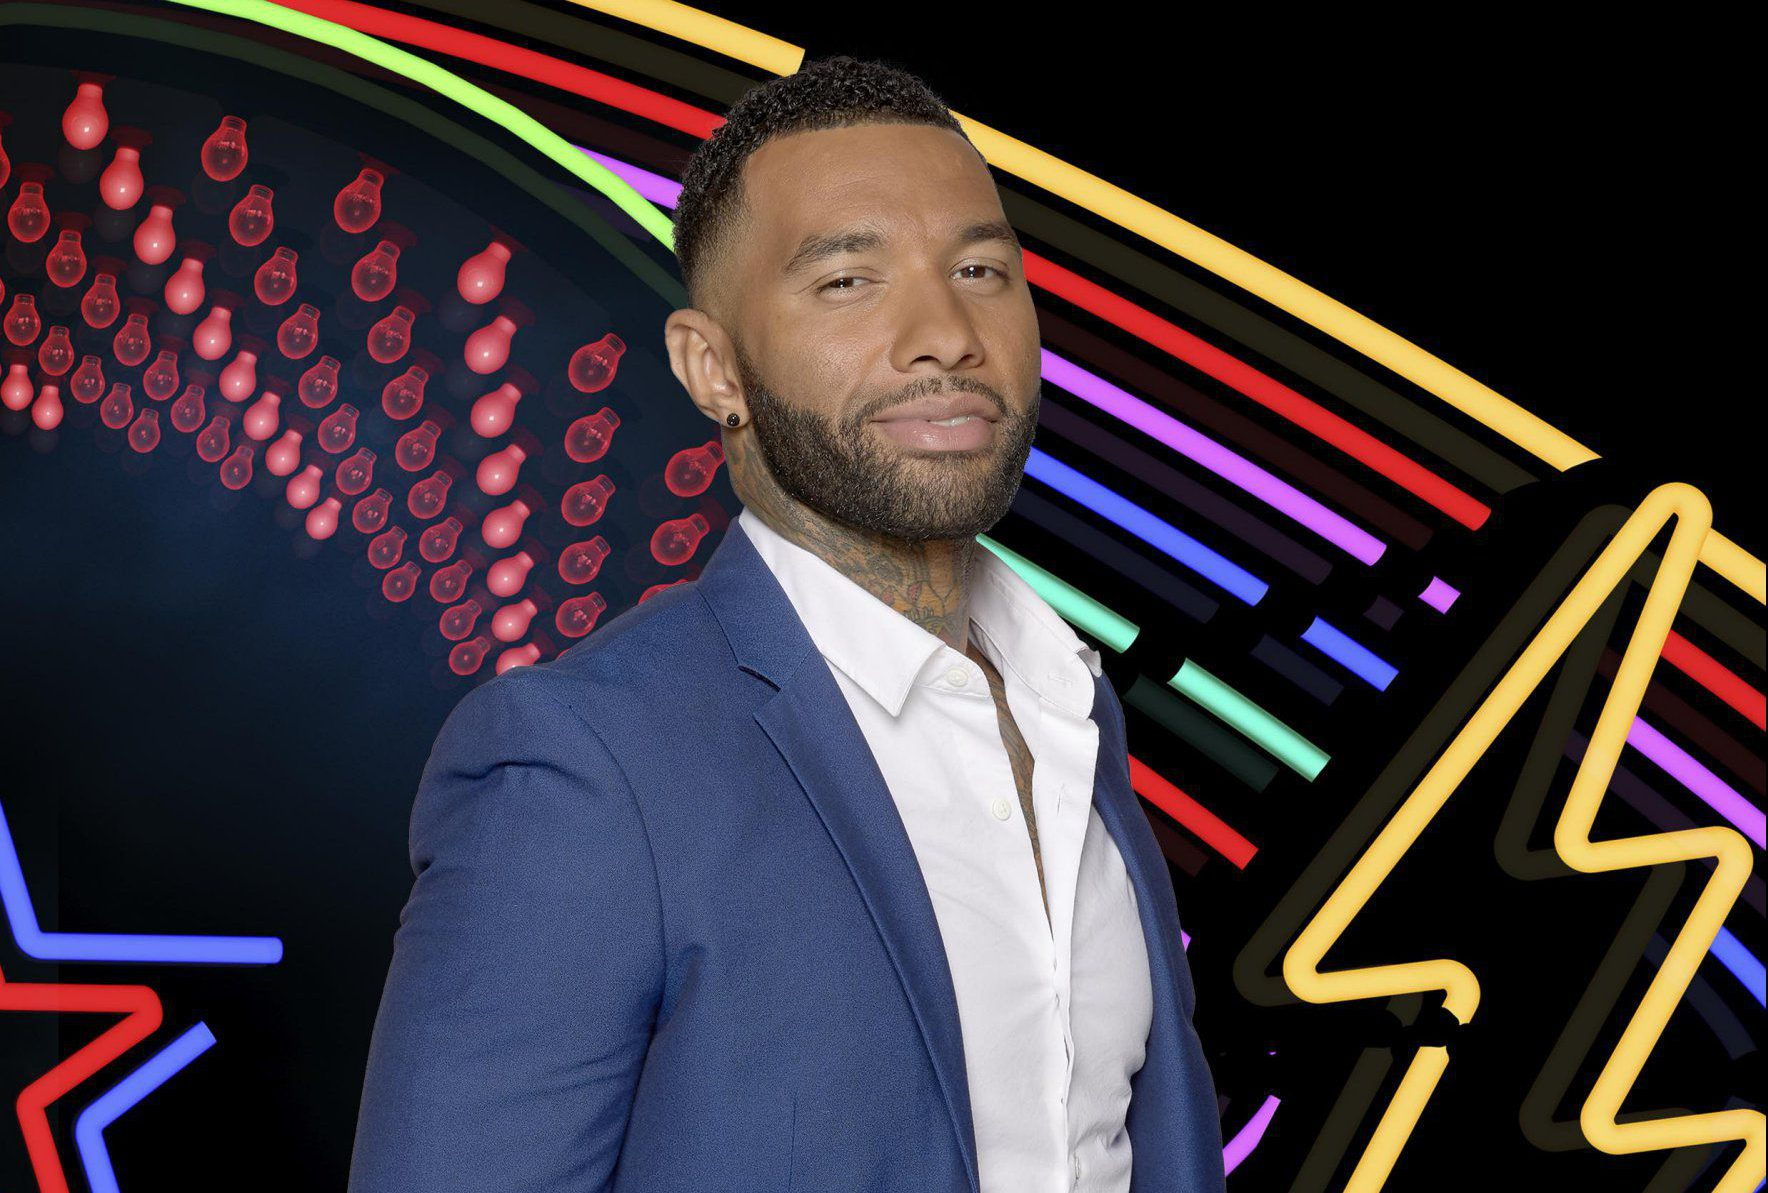 Jermaine Pennant becomes latest housemate to leave Celebrity Big Brother